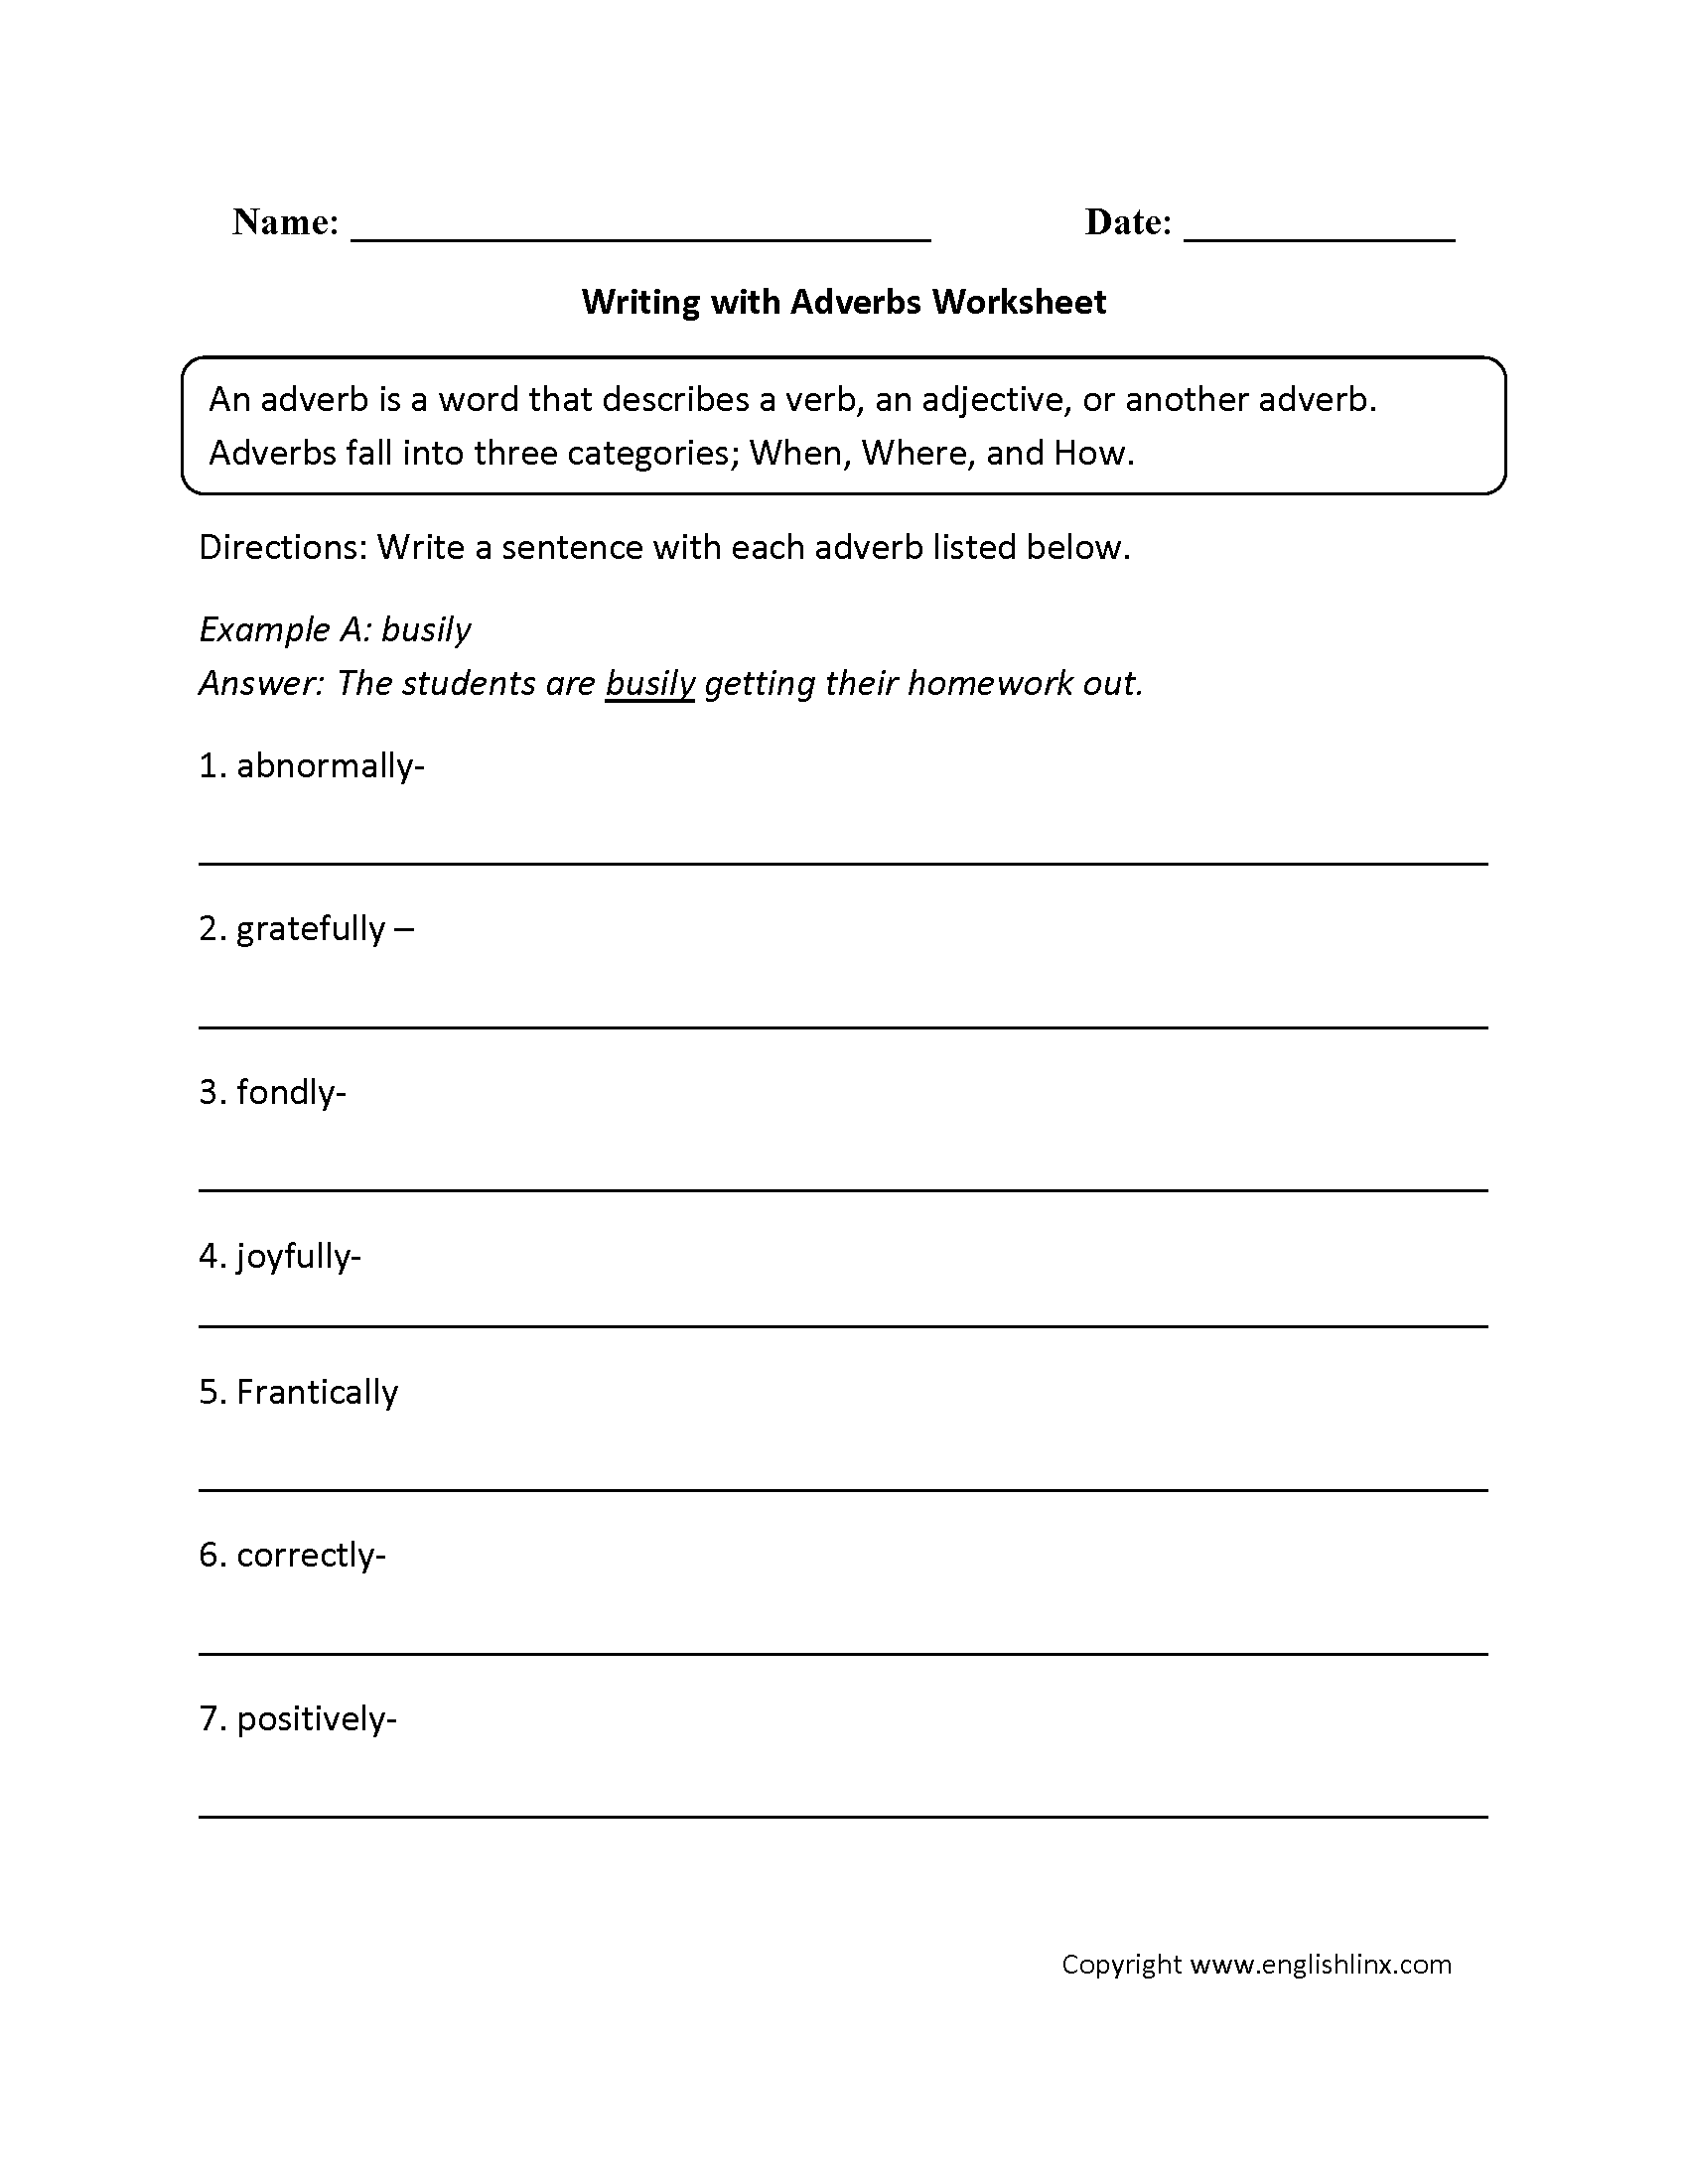 Adverbs Worksheets For Grade 3 954621